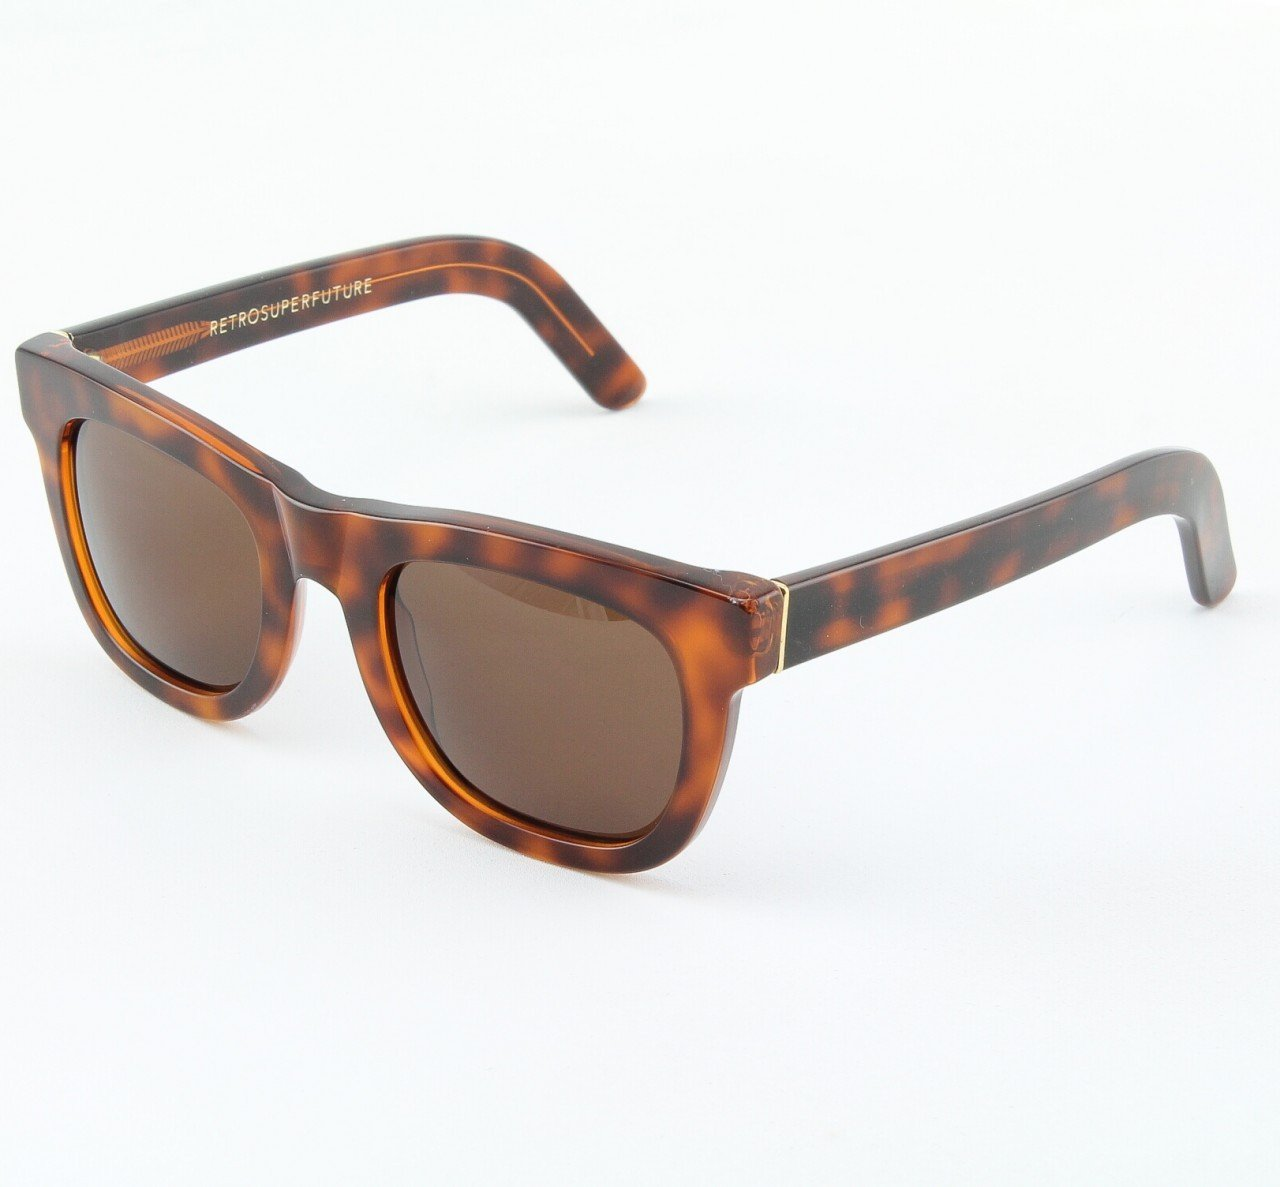 Super Ciccio 187/3A Sunglasses Classic Havana with Brown Zeiss Lenses by RETROSUPERFUTURE